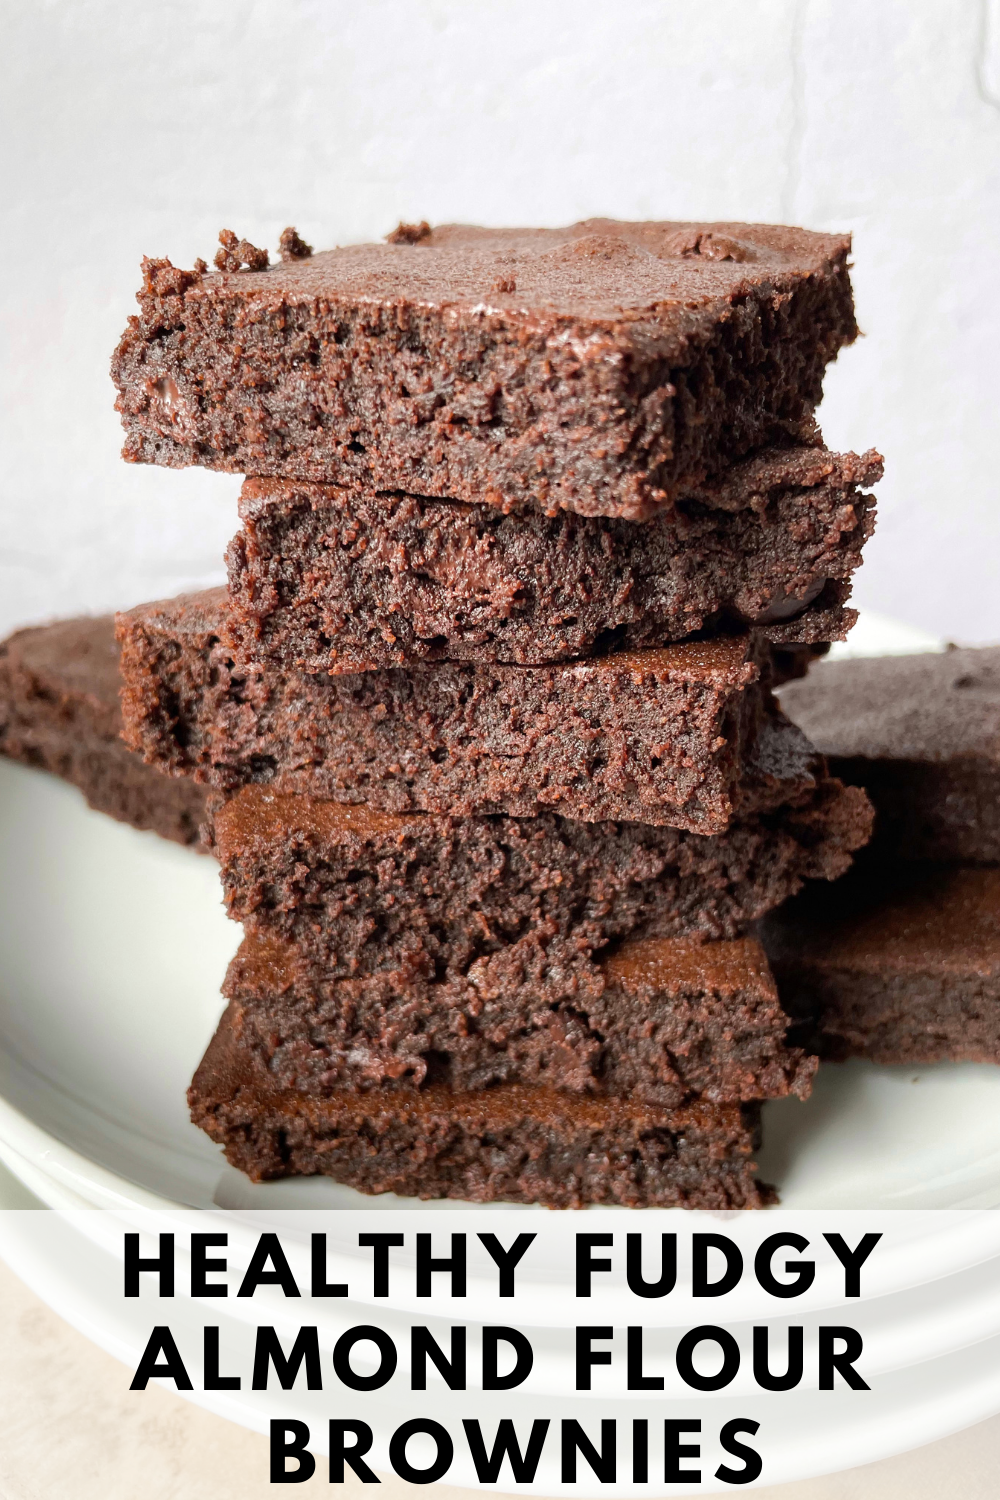 stacked almond flour brownies with text overlay